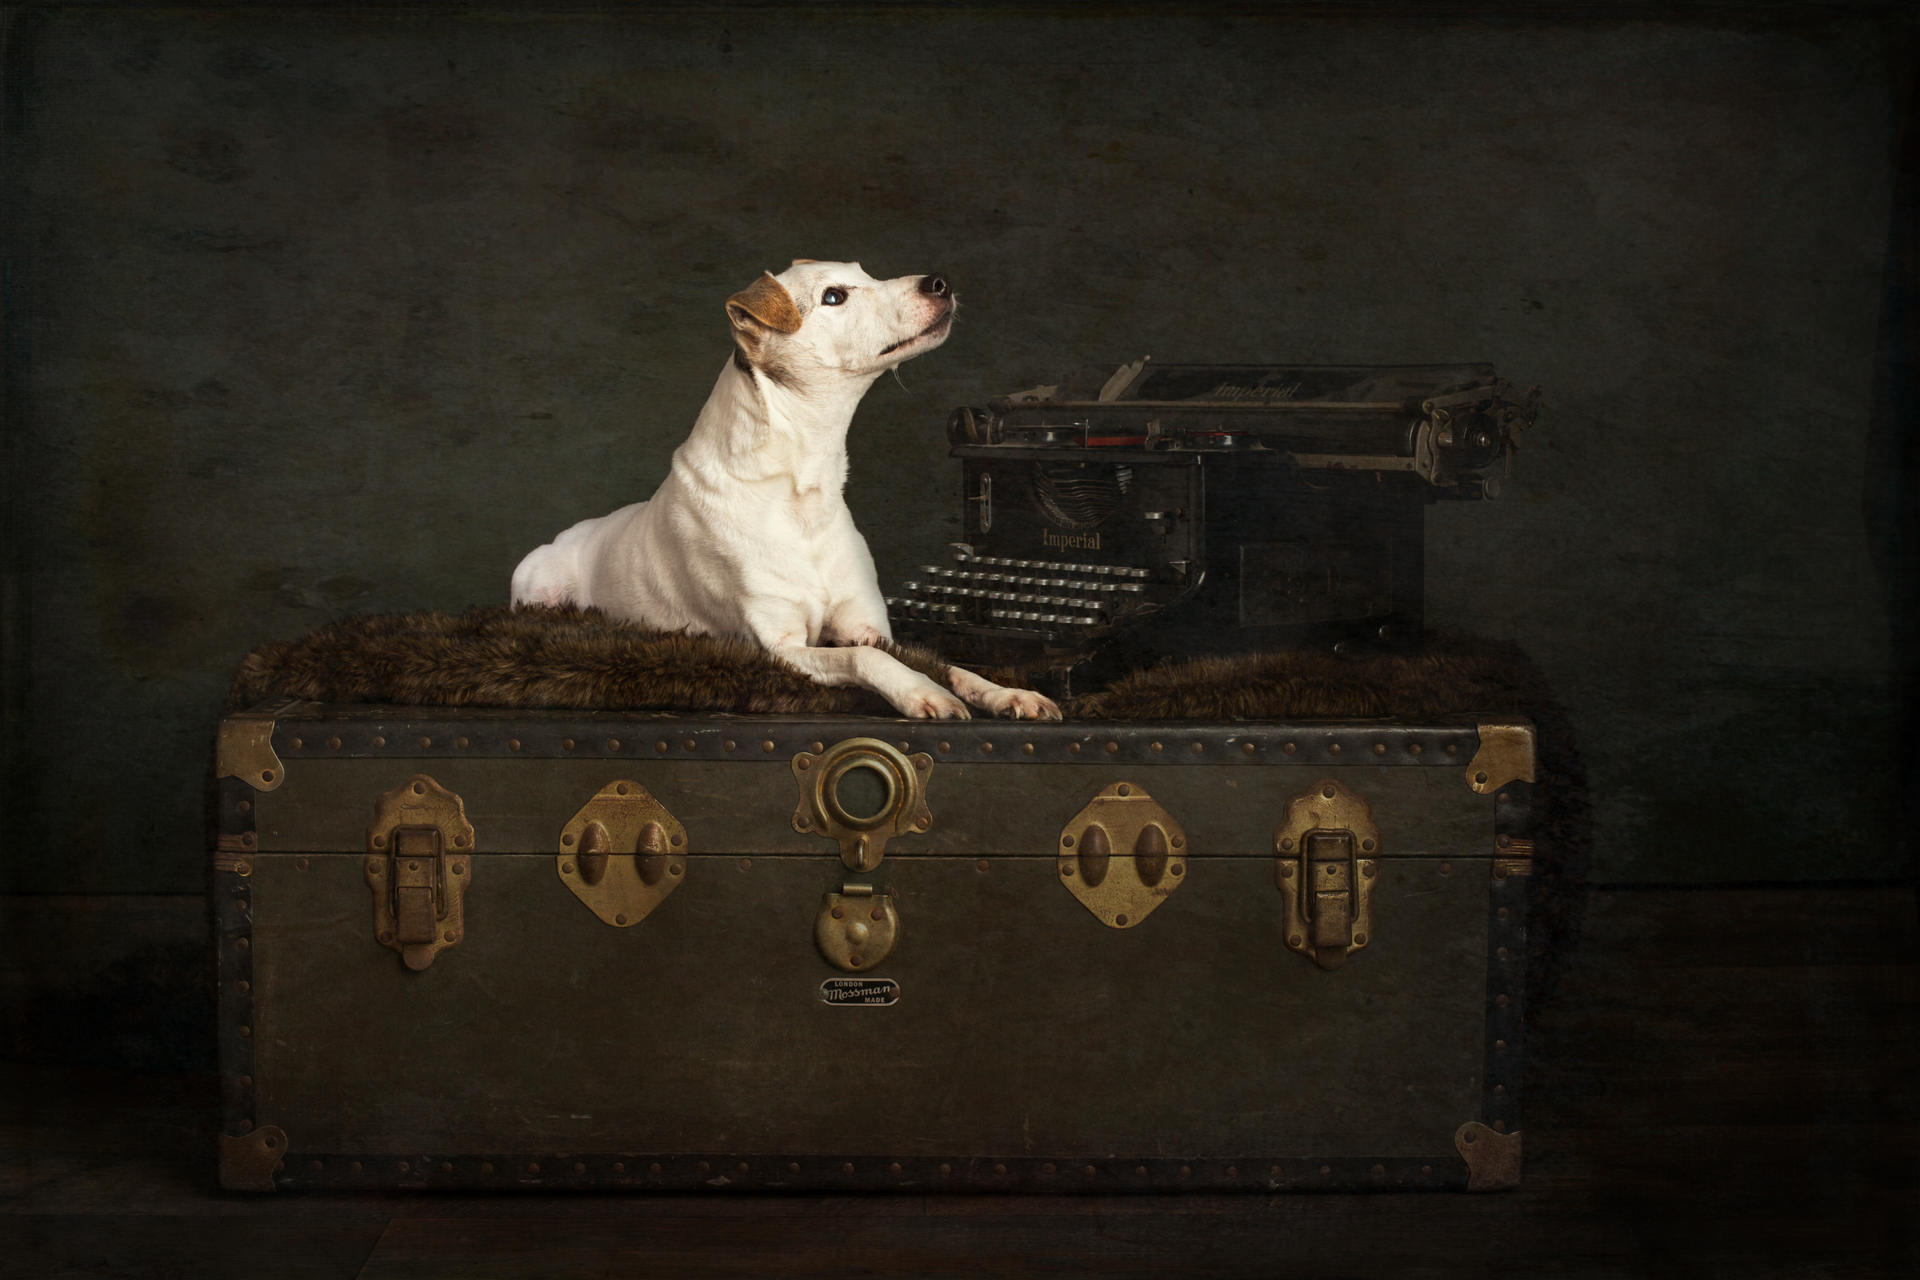 The-Artful-Dog-Studio-Dog-Photographer-15-1